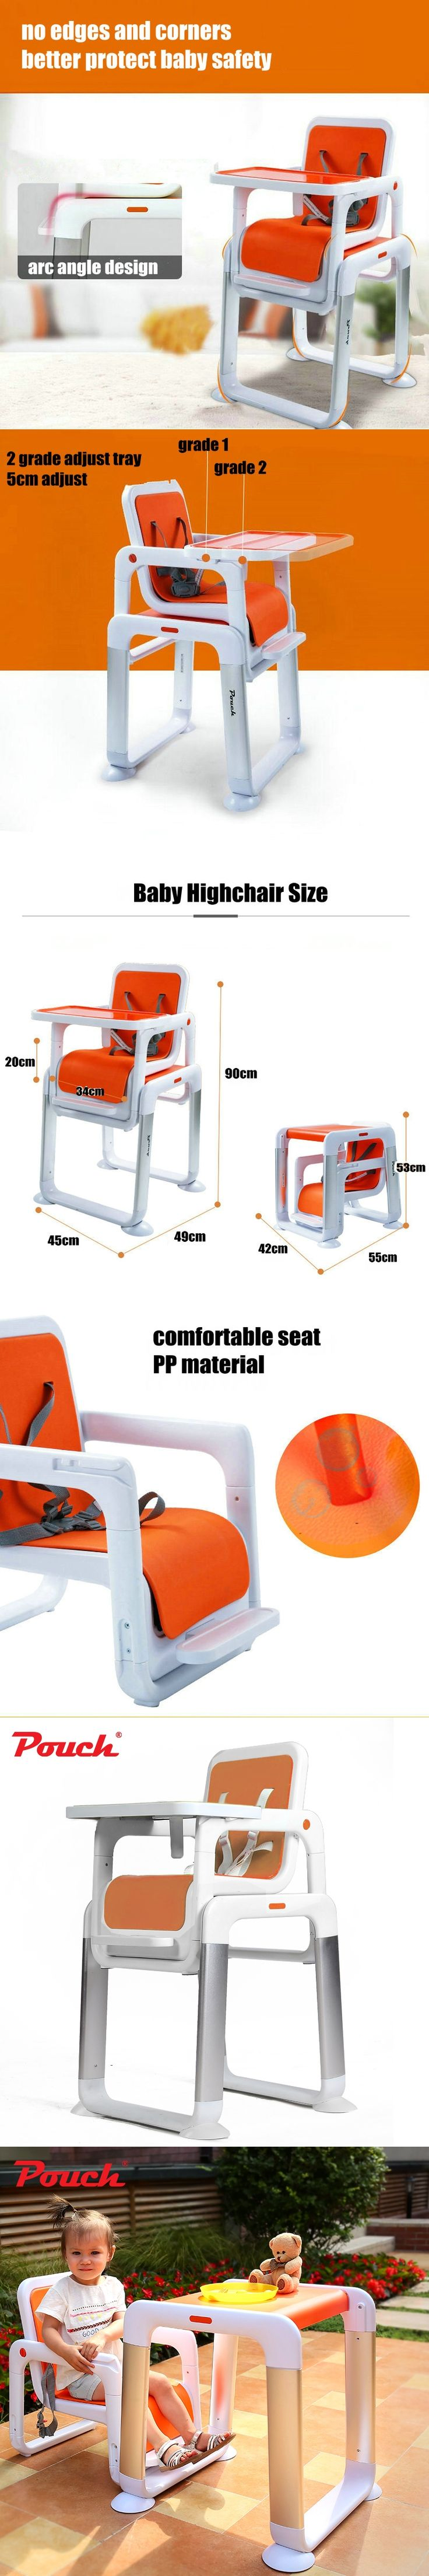 Best 25 Kids Booster Seat Ideas On Pinterest  Baby Needs High Classy Booster Seat For Dining Room Chair Decorating Inspiration